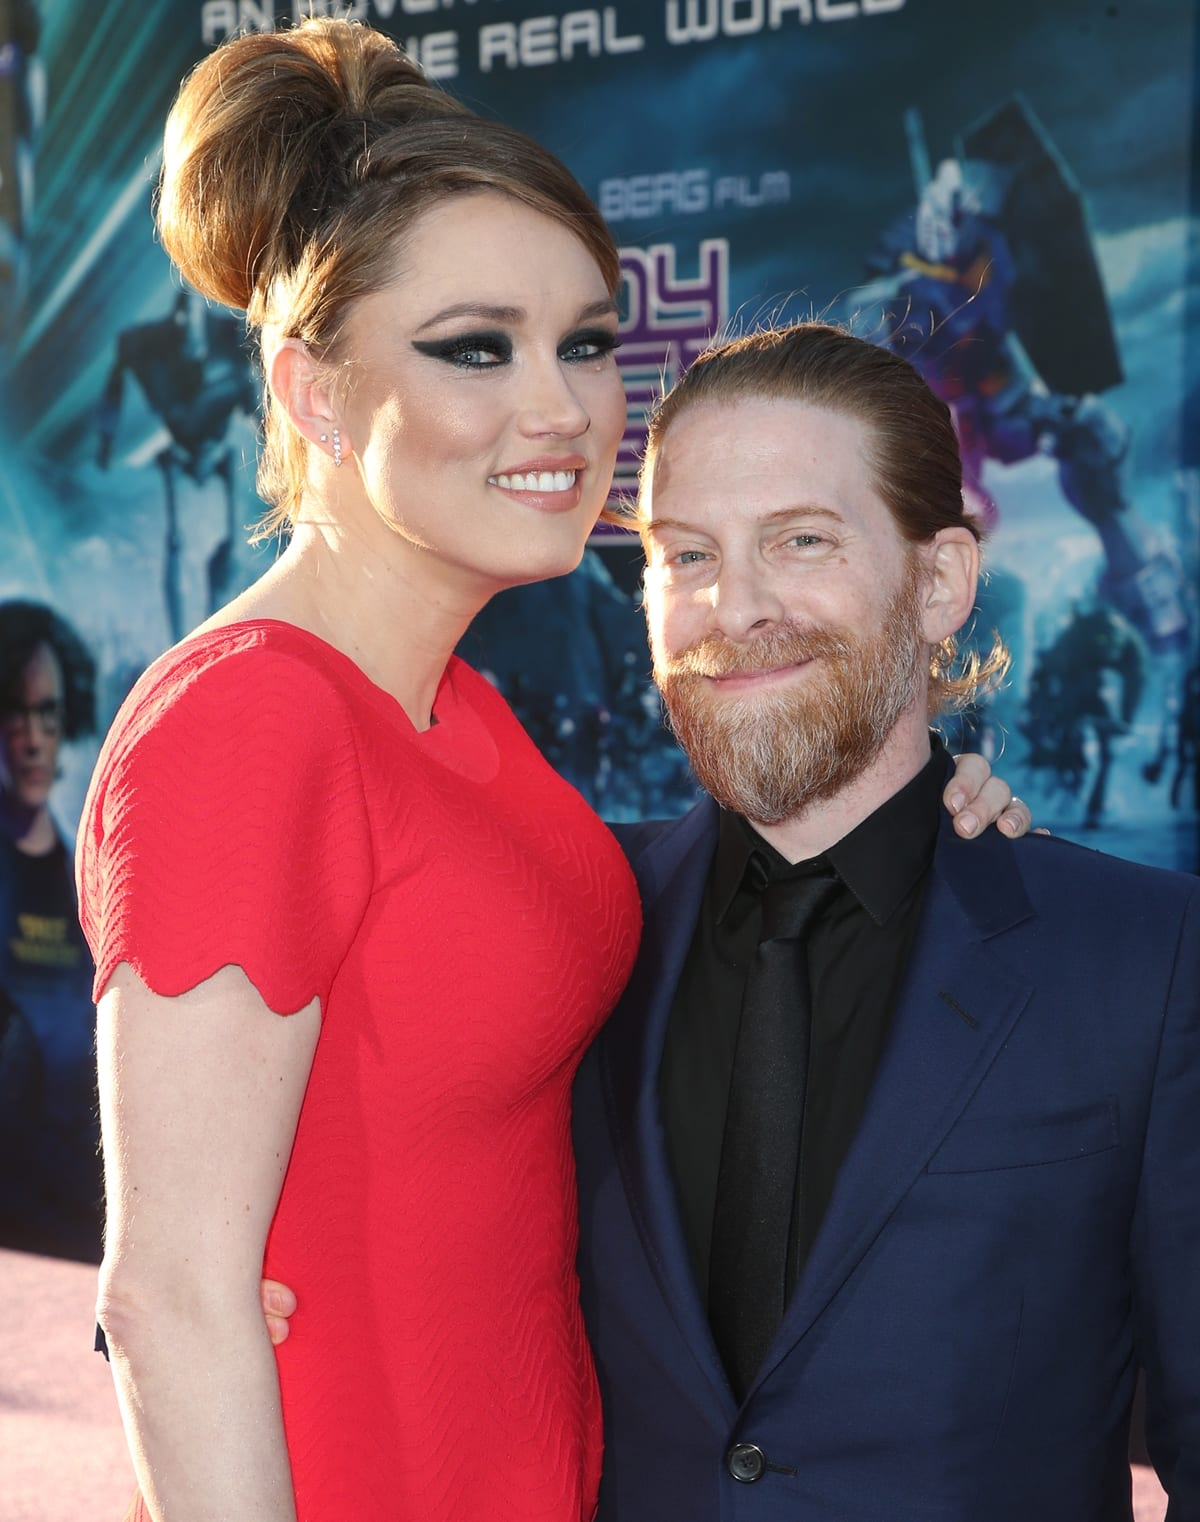 Married to Clare Grant for over a decade, Seth Green says he has no plans to have kids